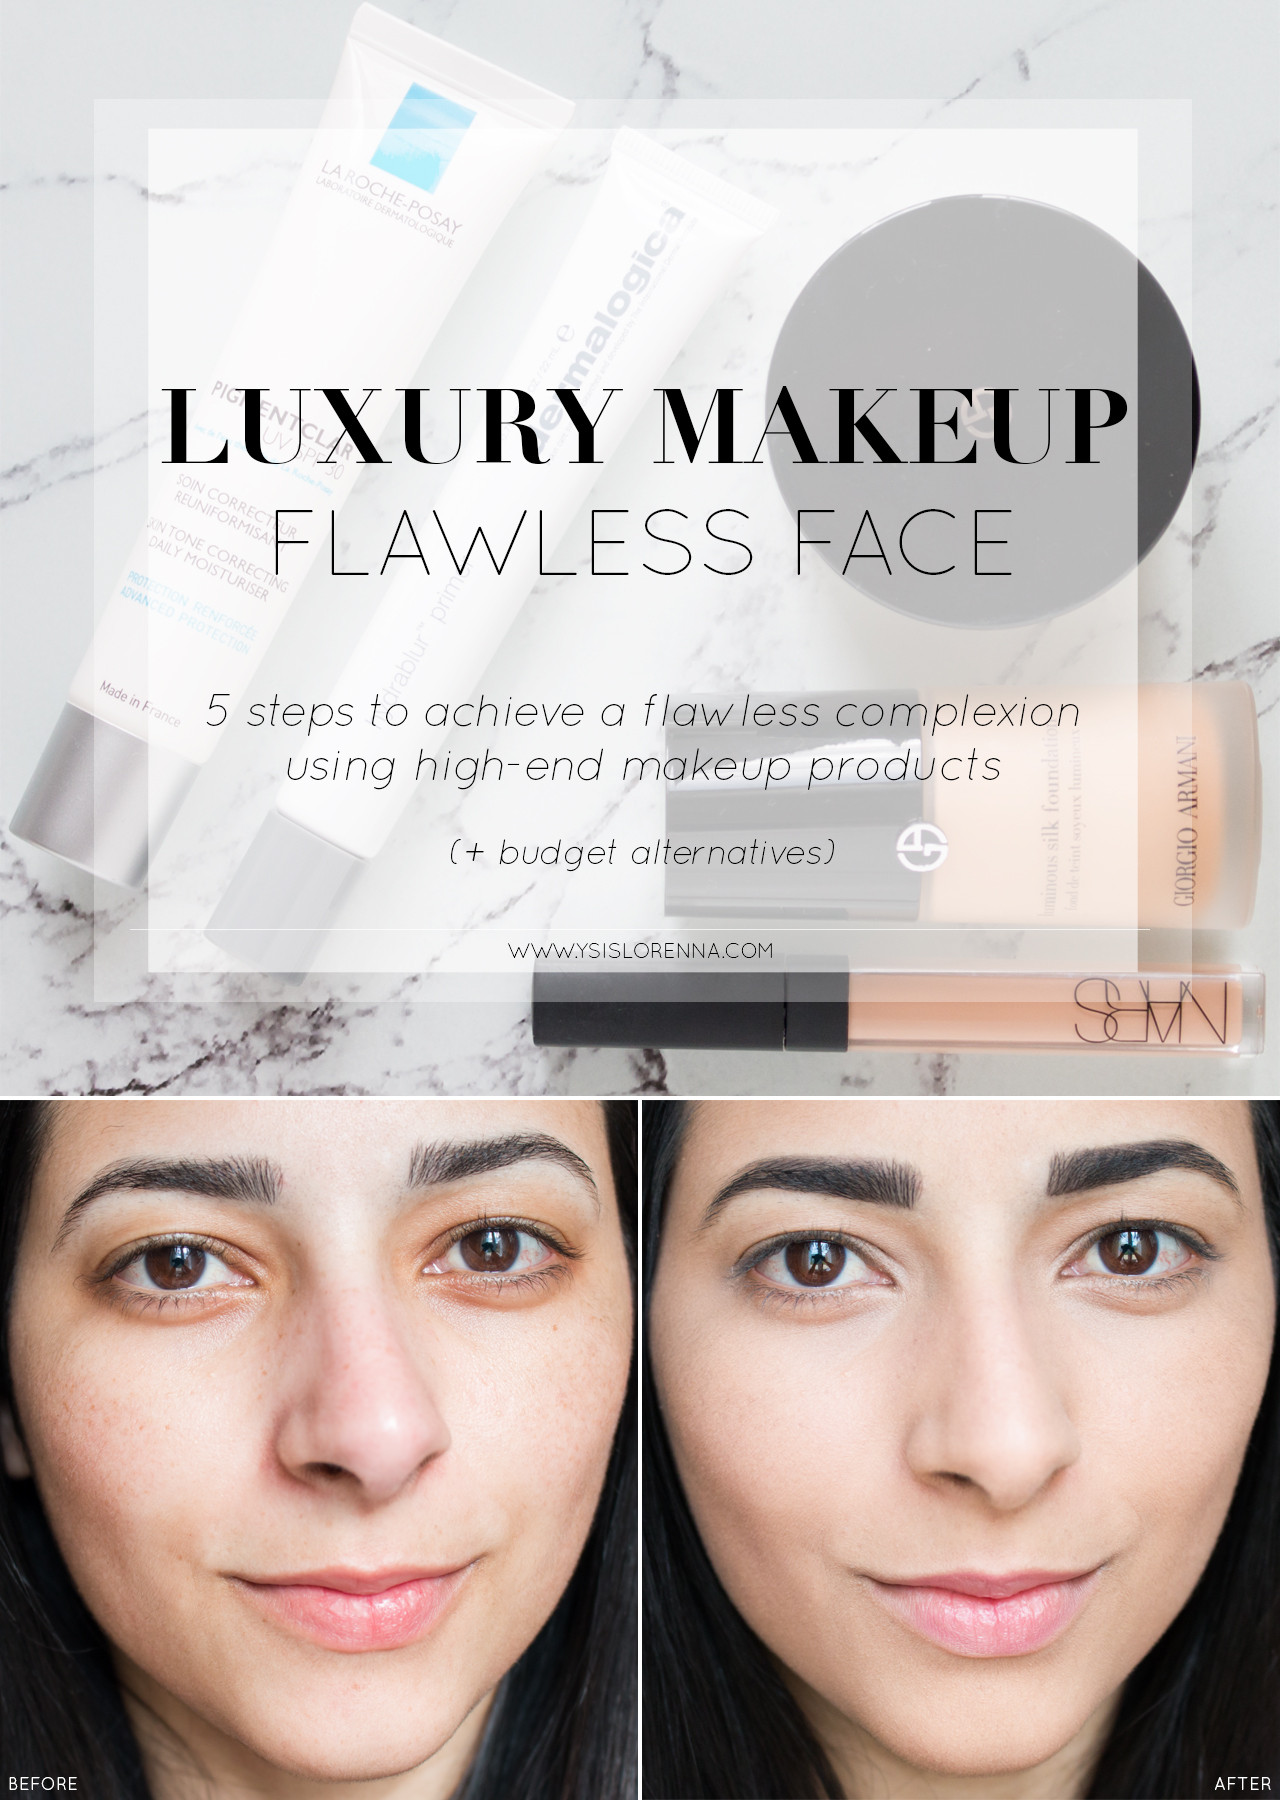 How To: Flawless Face with Luxury Makeup + Budget Alternatives - www.ysislorenna.com